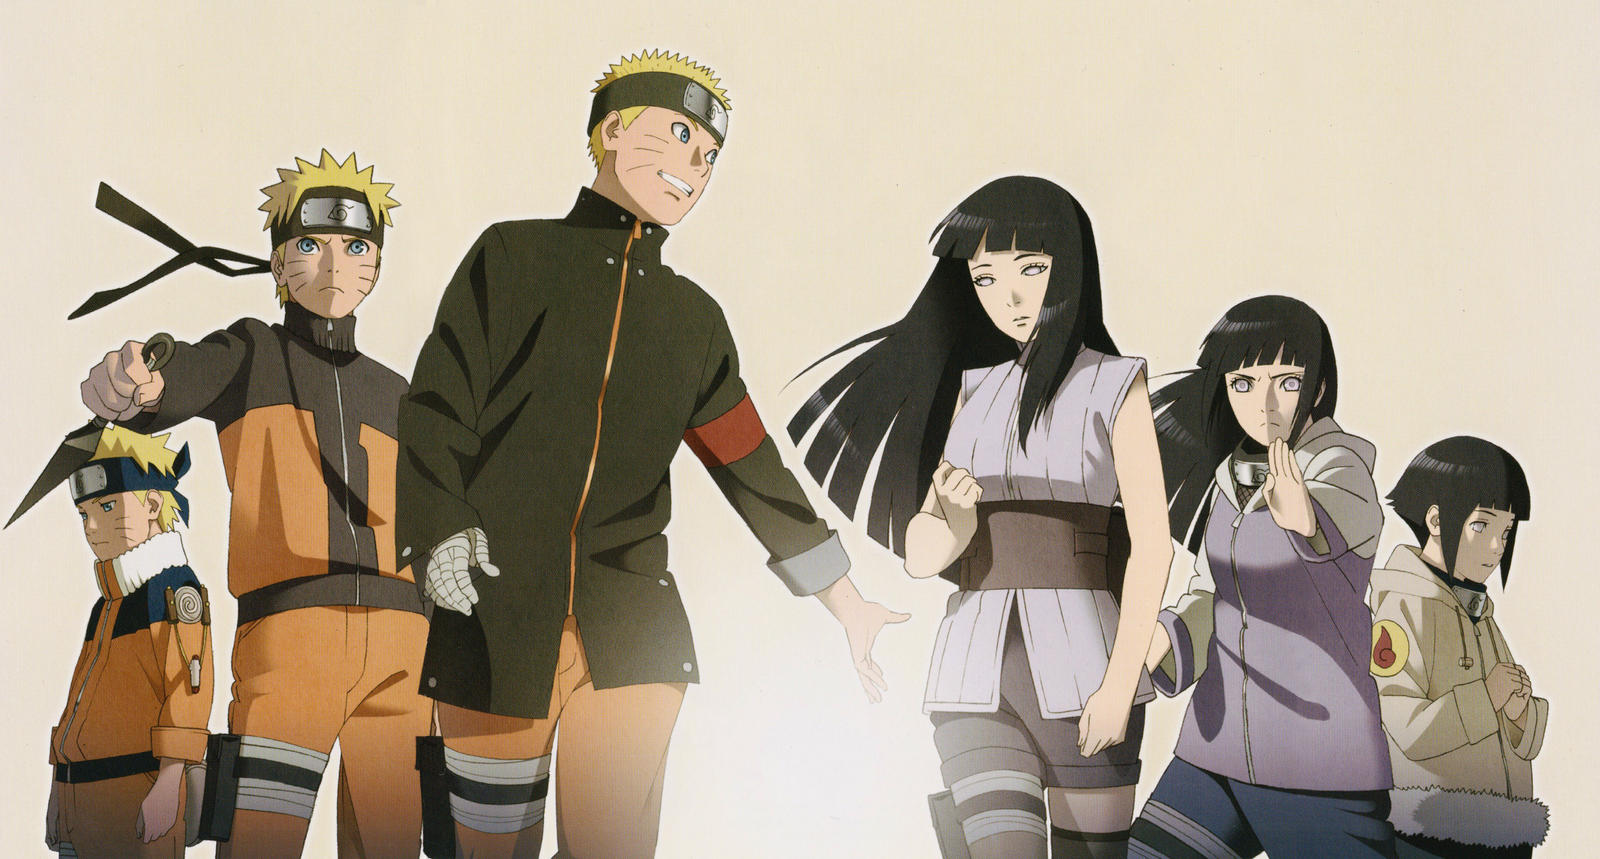 Naruto and Hinata (The Last) by Schneeblau on DeviantArt